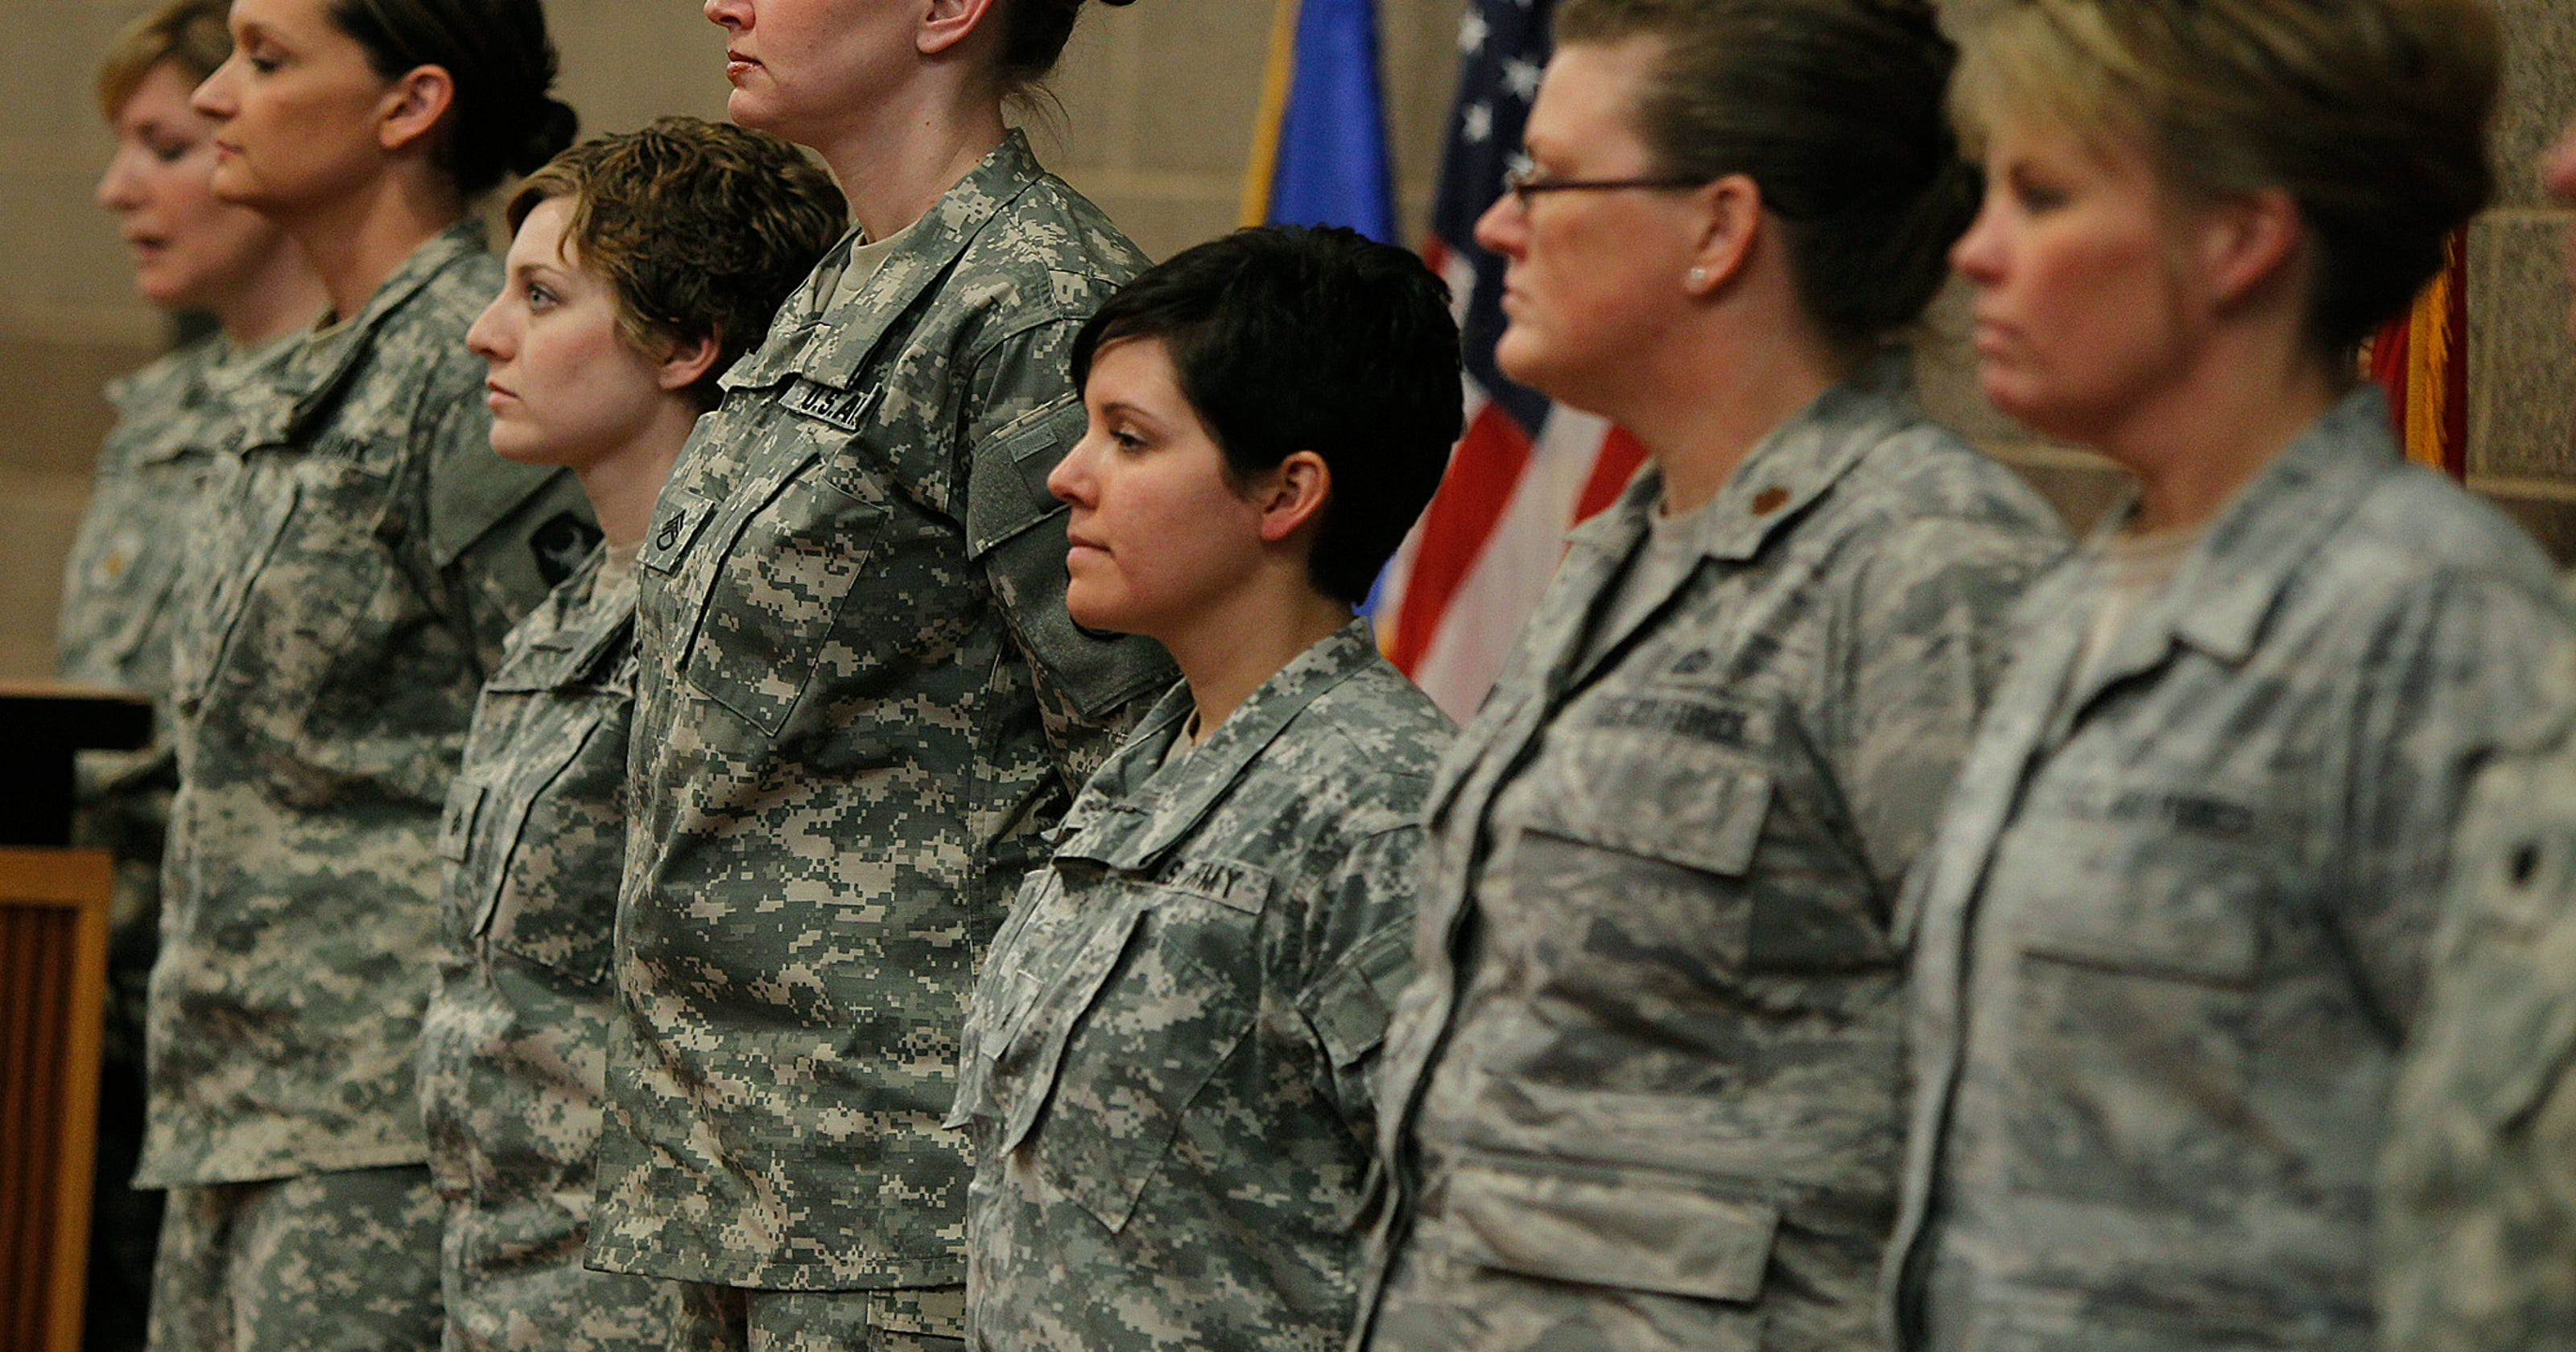 should women be allowed in military combat